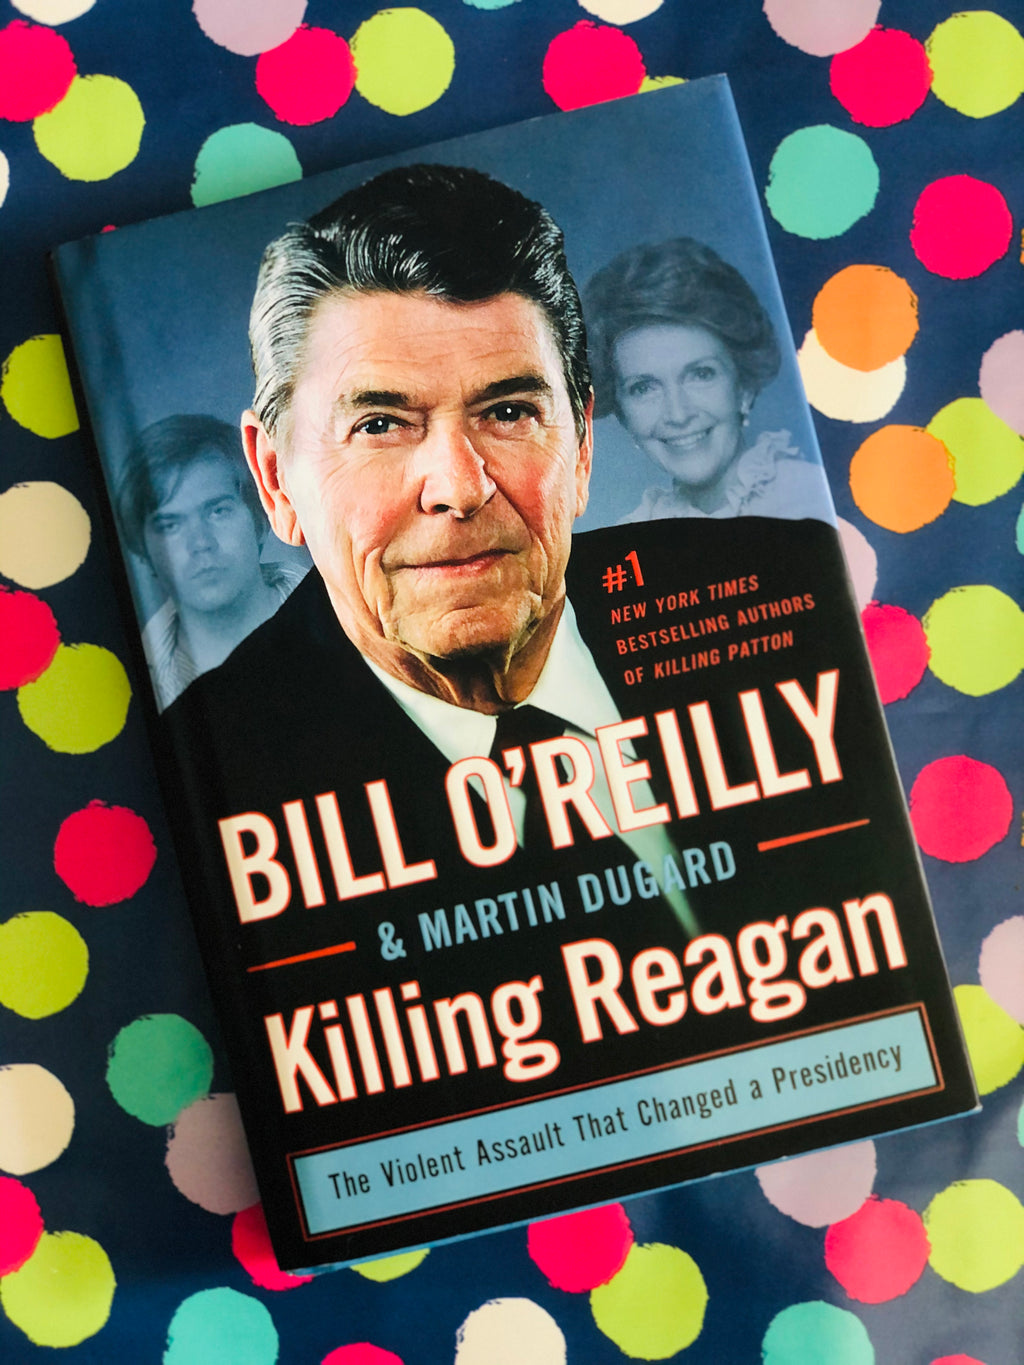 Killing Reagan by Bill O'Reilly & Martin Dugard